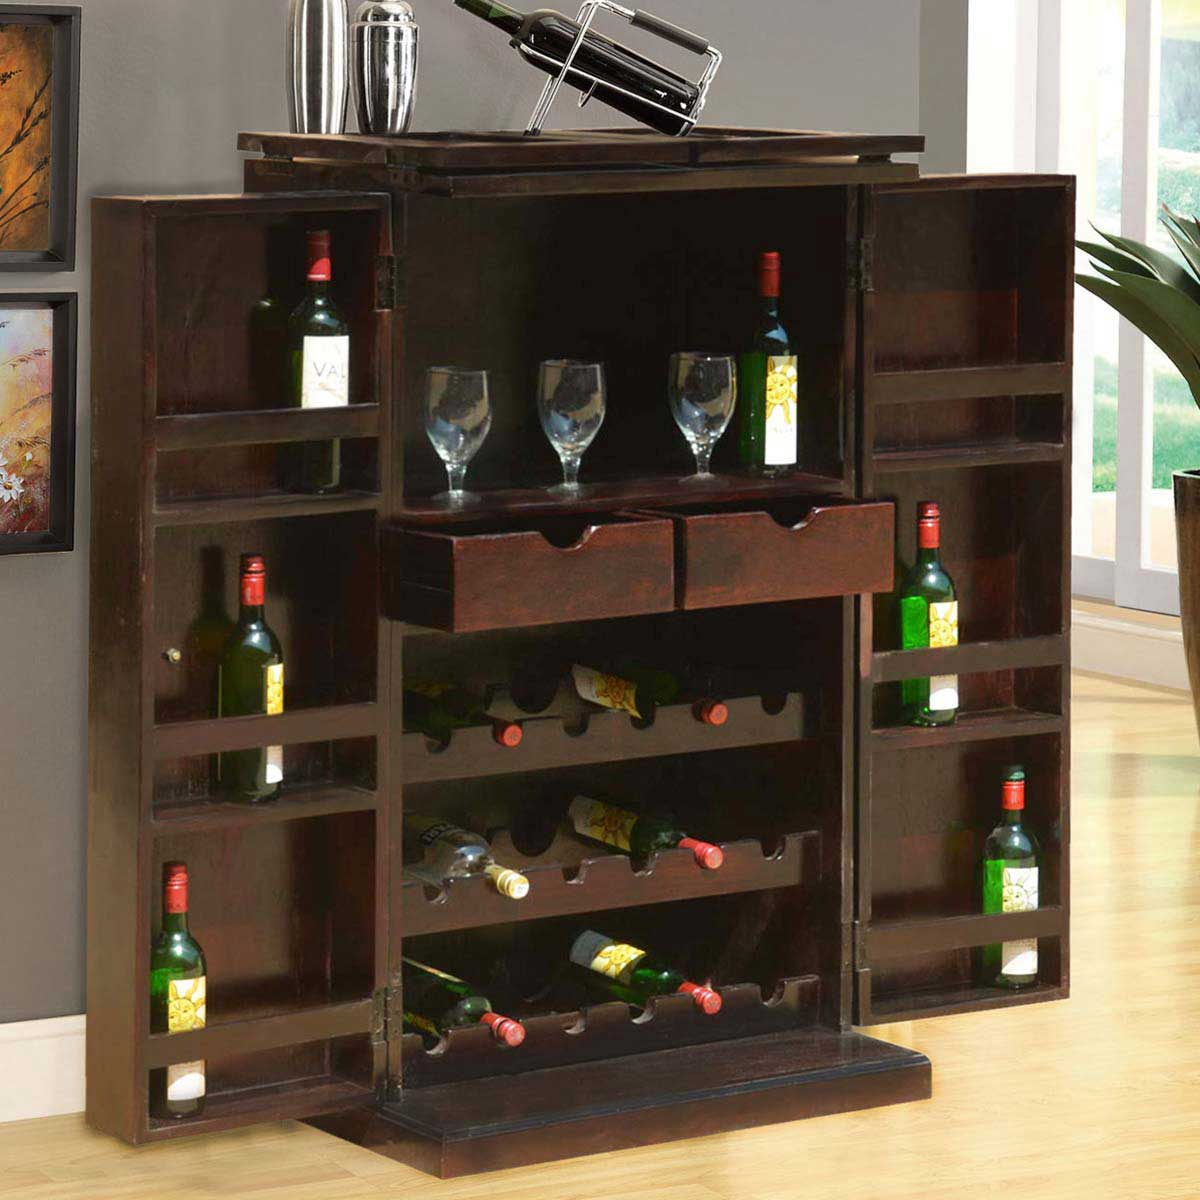 Wine Storage Cabinet Get A Custom Home Bar And Built In Wine Storage Cabinet